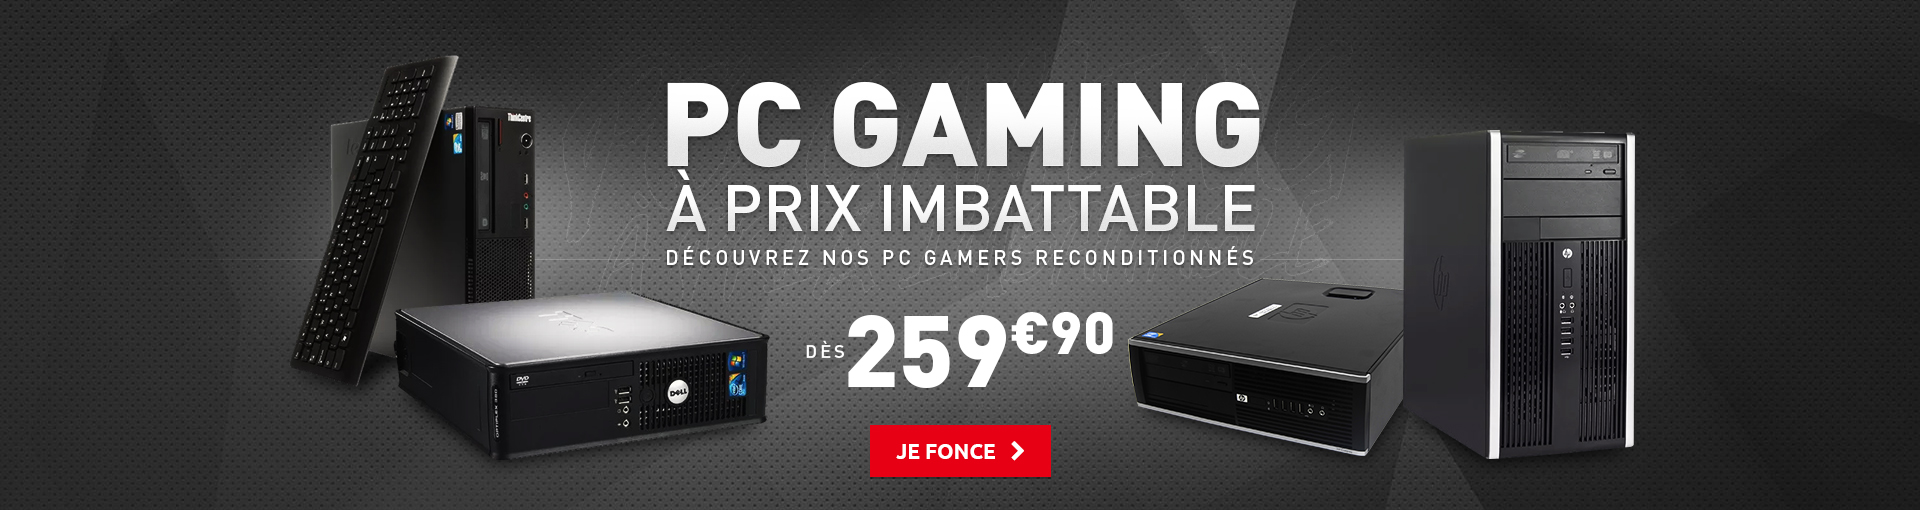 2015-10-21-Gamers-Reconditionnes